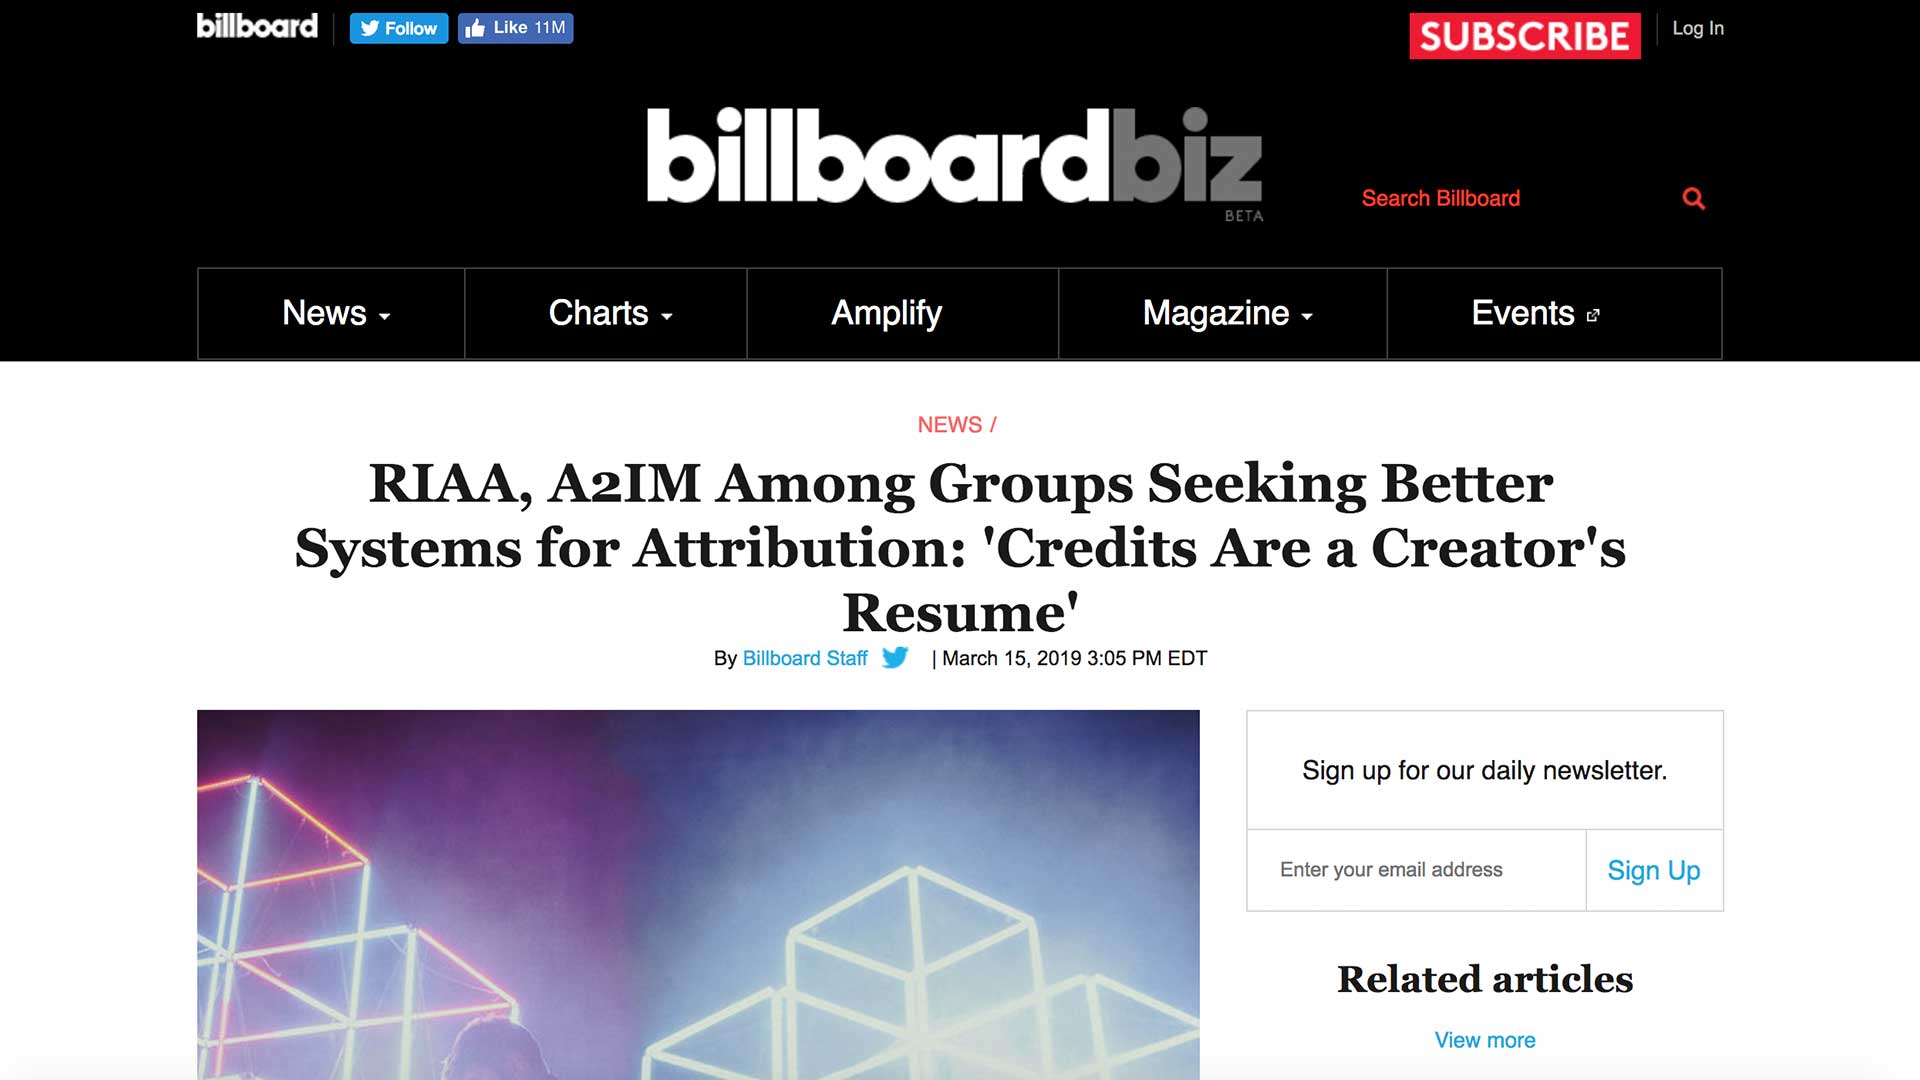 Fairness Rocks News RIAA, A2IM Among Groups Seeking Better Systems for Attribution: 'Credits Are a Creator's Resume'